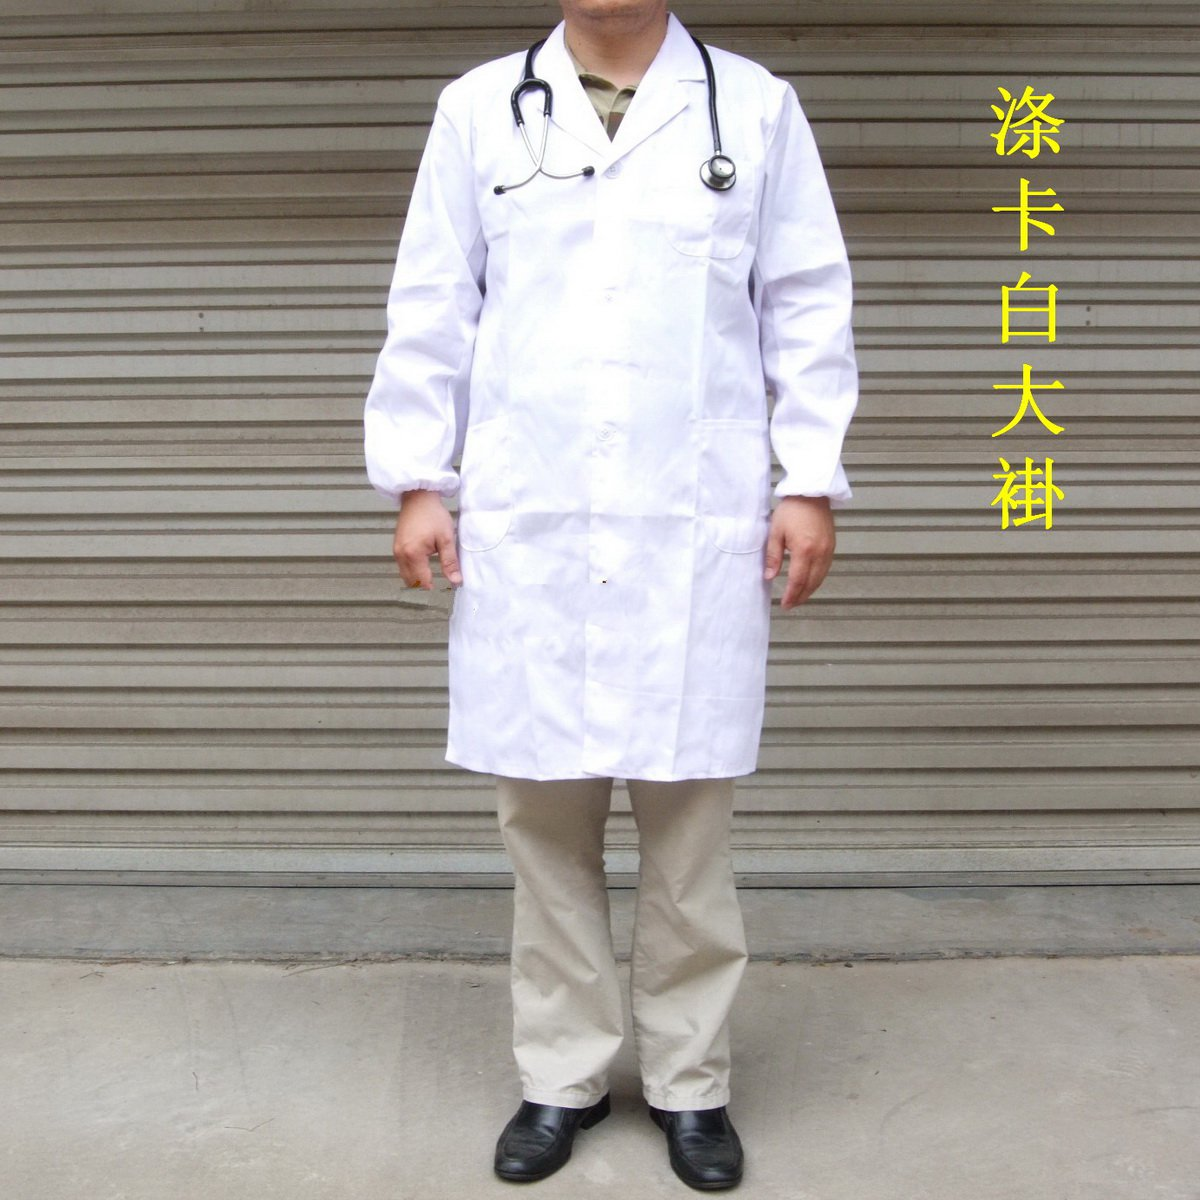 Long-sleeved white coat lab gowns physician medical protective overalls cotton or polyester cards thick section thin section